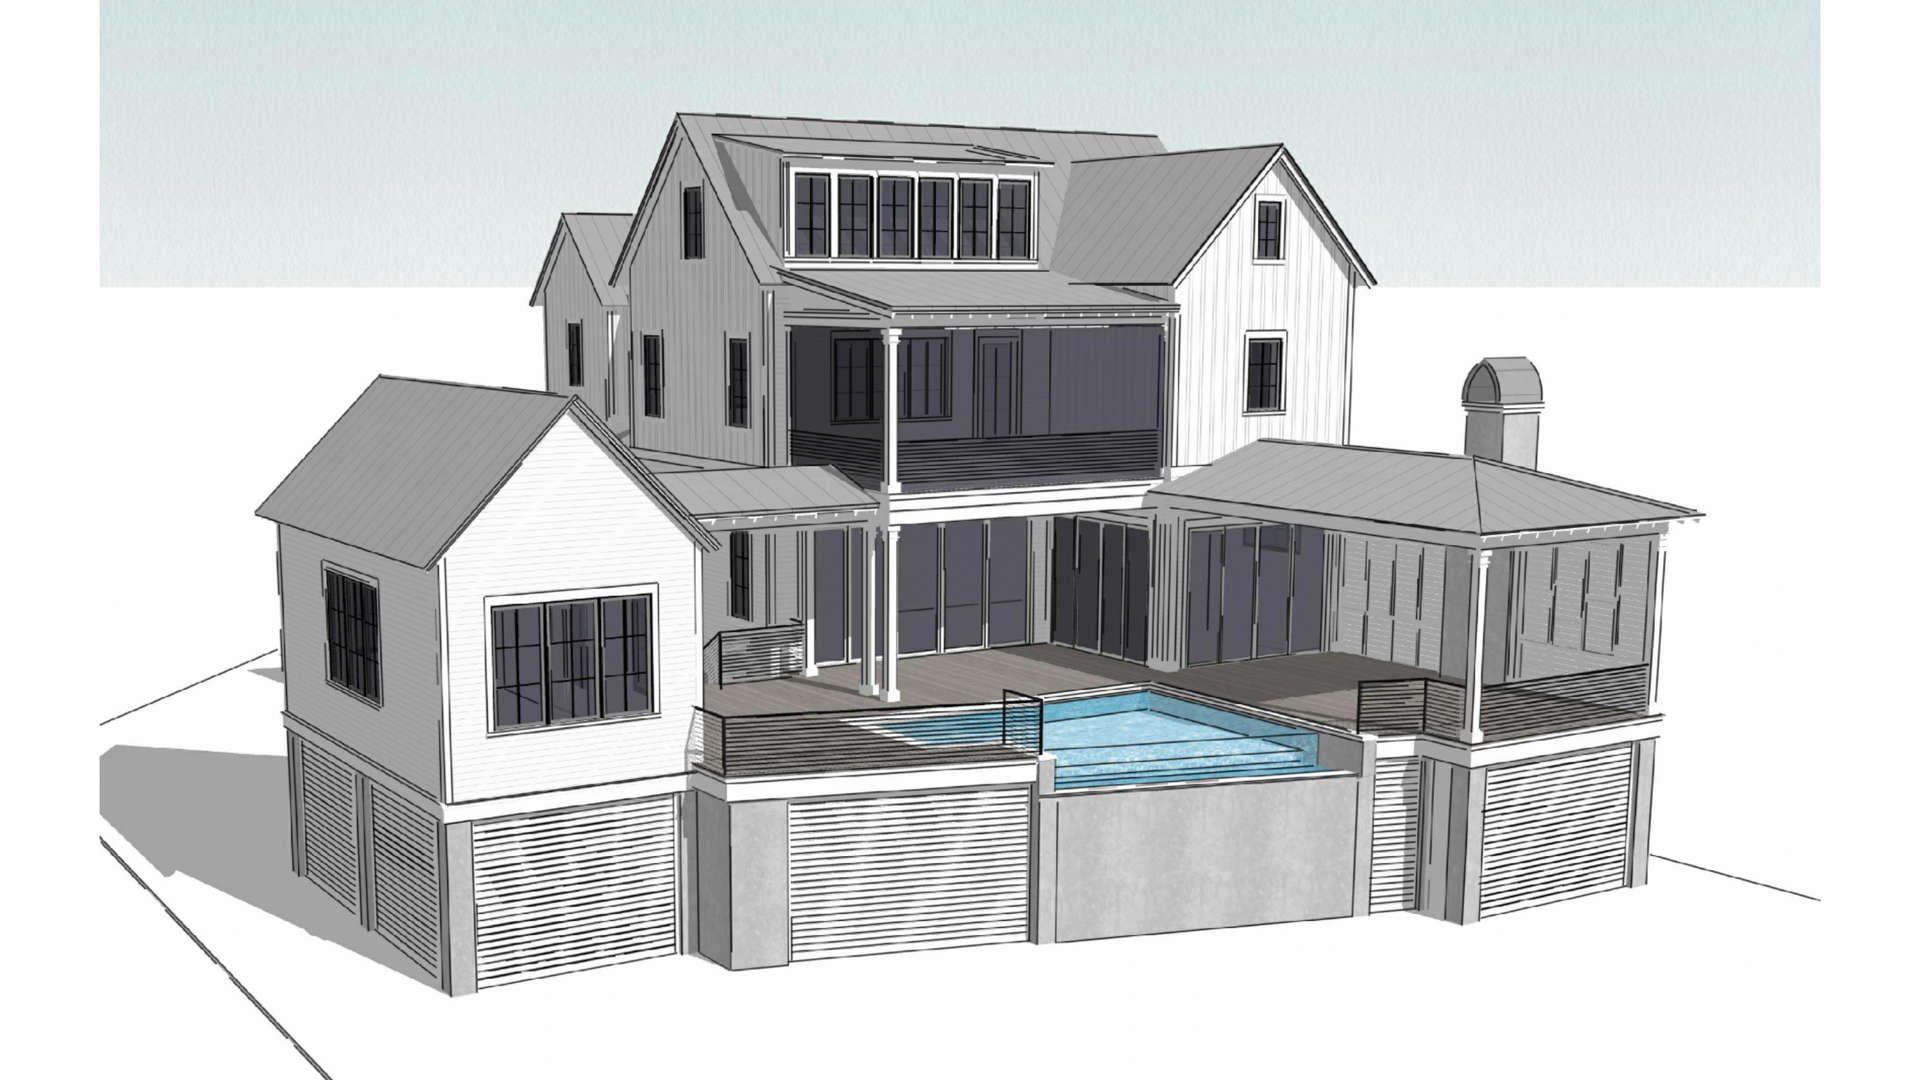 18 of 36. Home renderings are to act as aid in lot visualization. Only lot for sale.